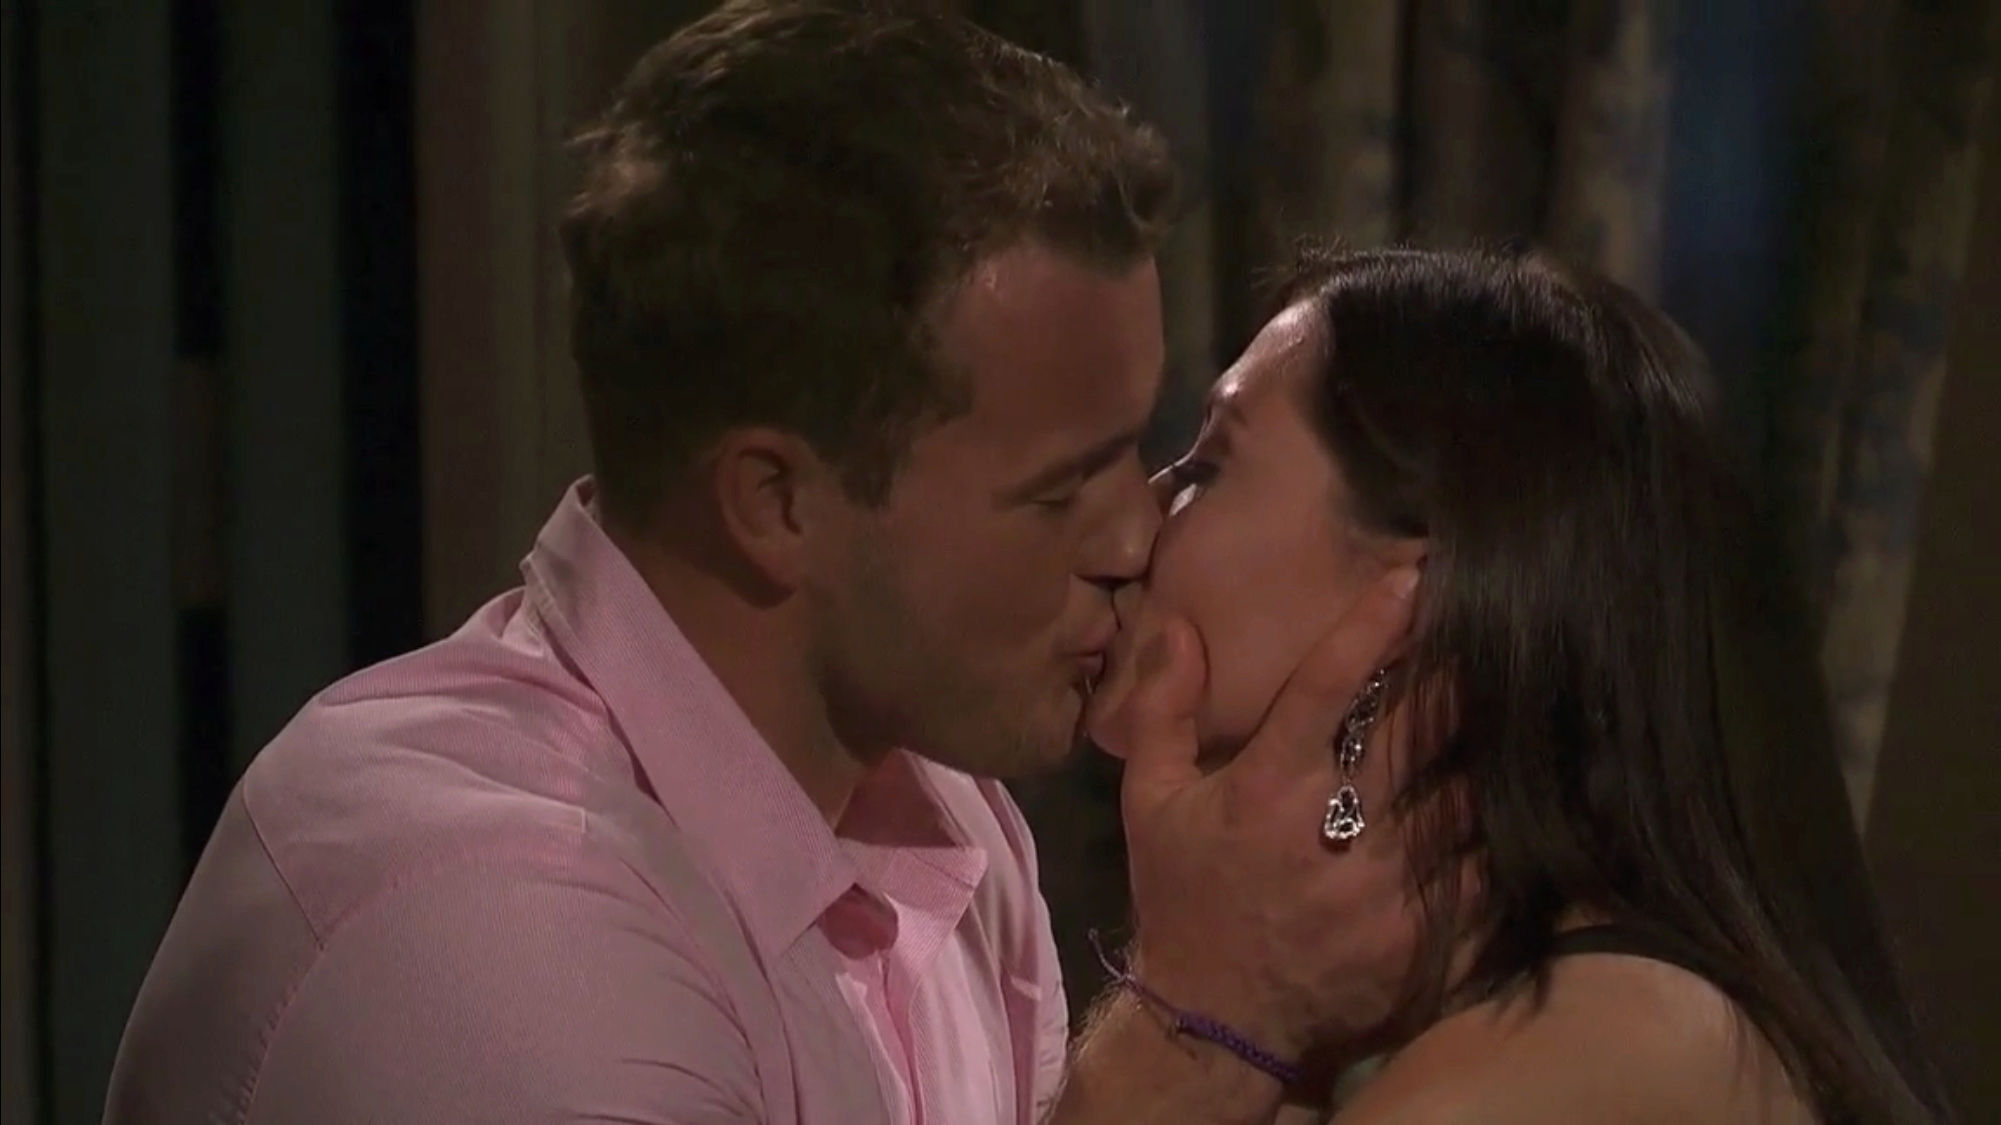 Bachelorette 14 - Becca Kufrin - ScreenCaps - NO Discussion - *Sleuthing Spoilers* 4eee0710